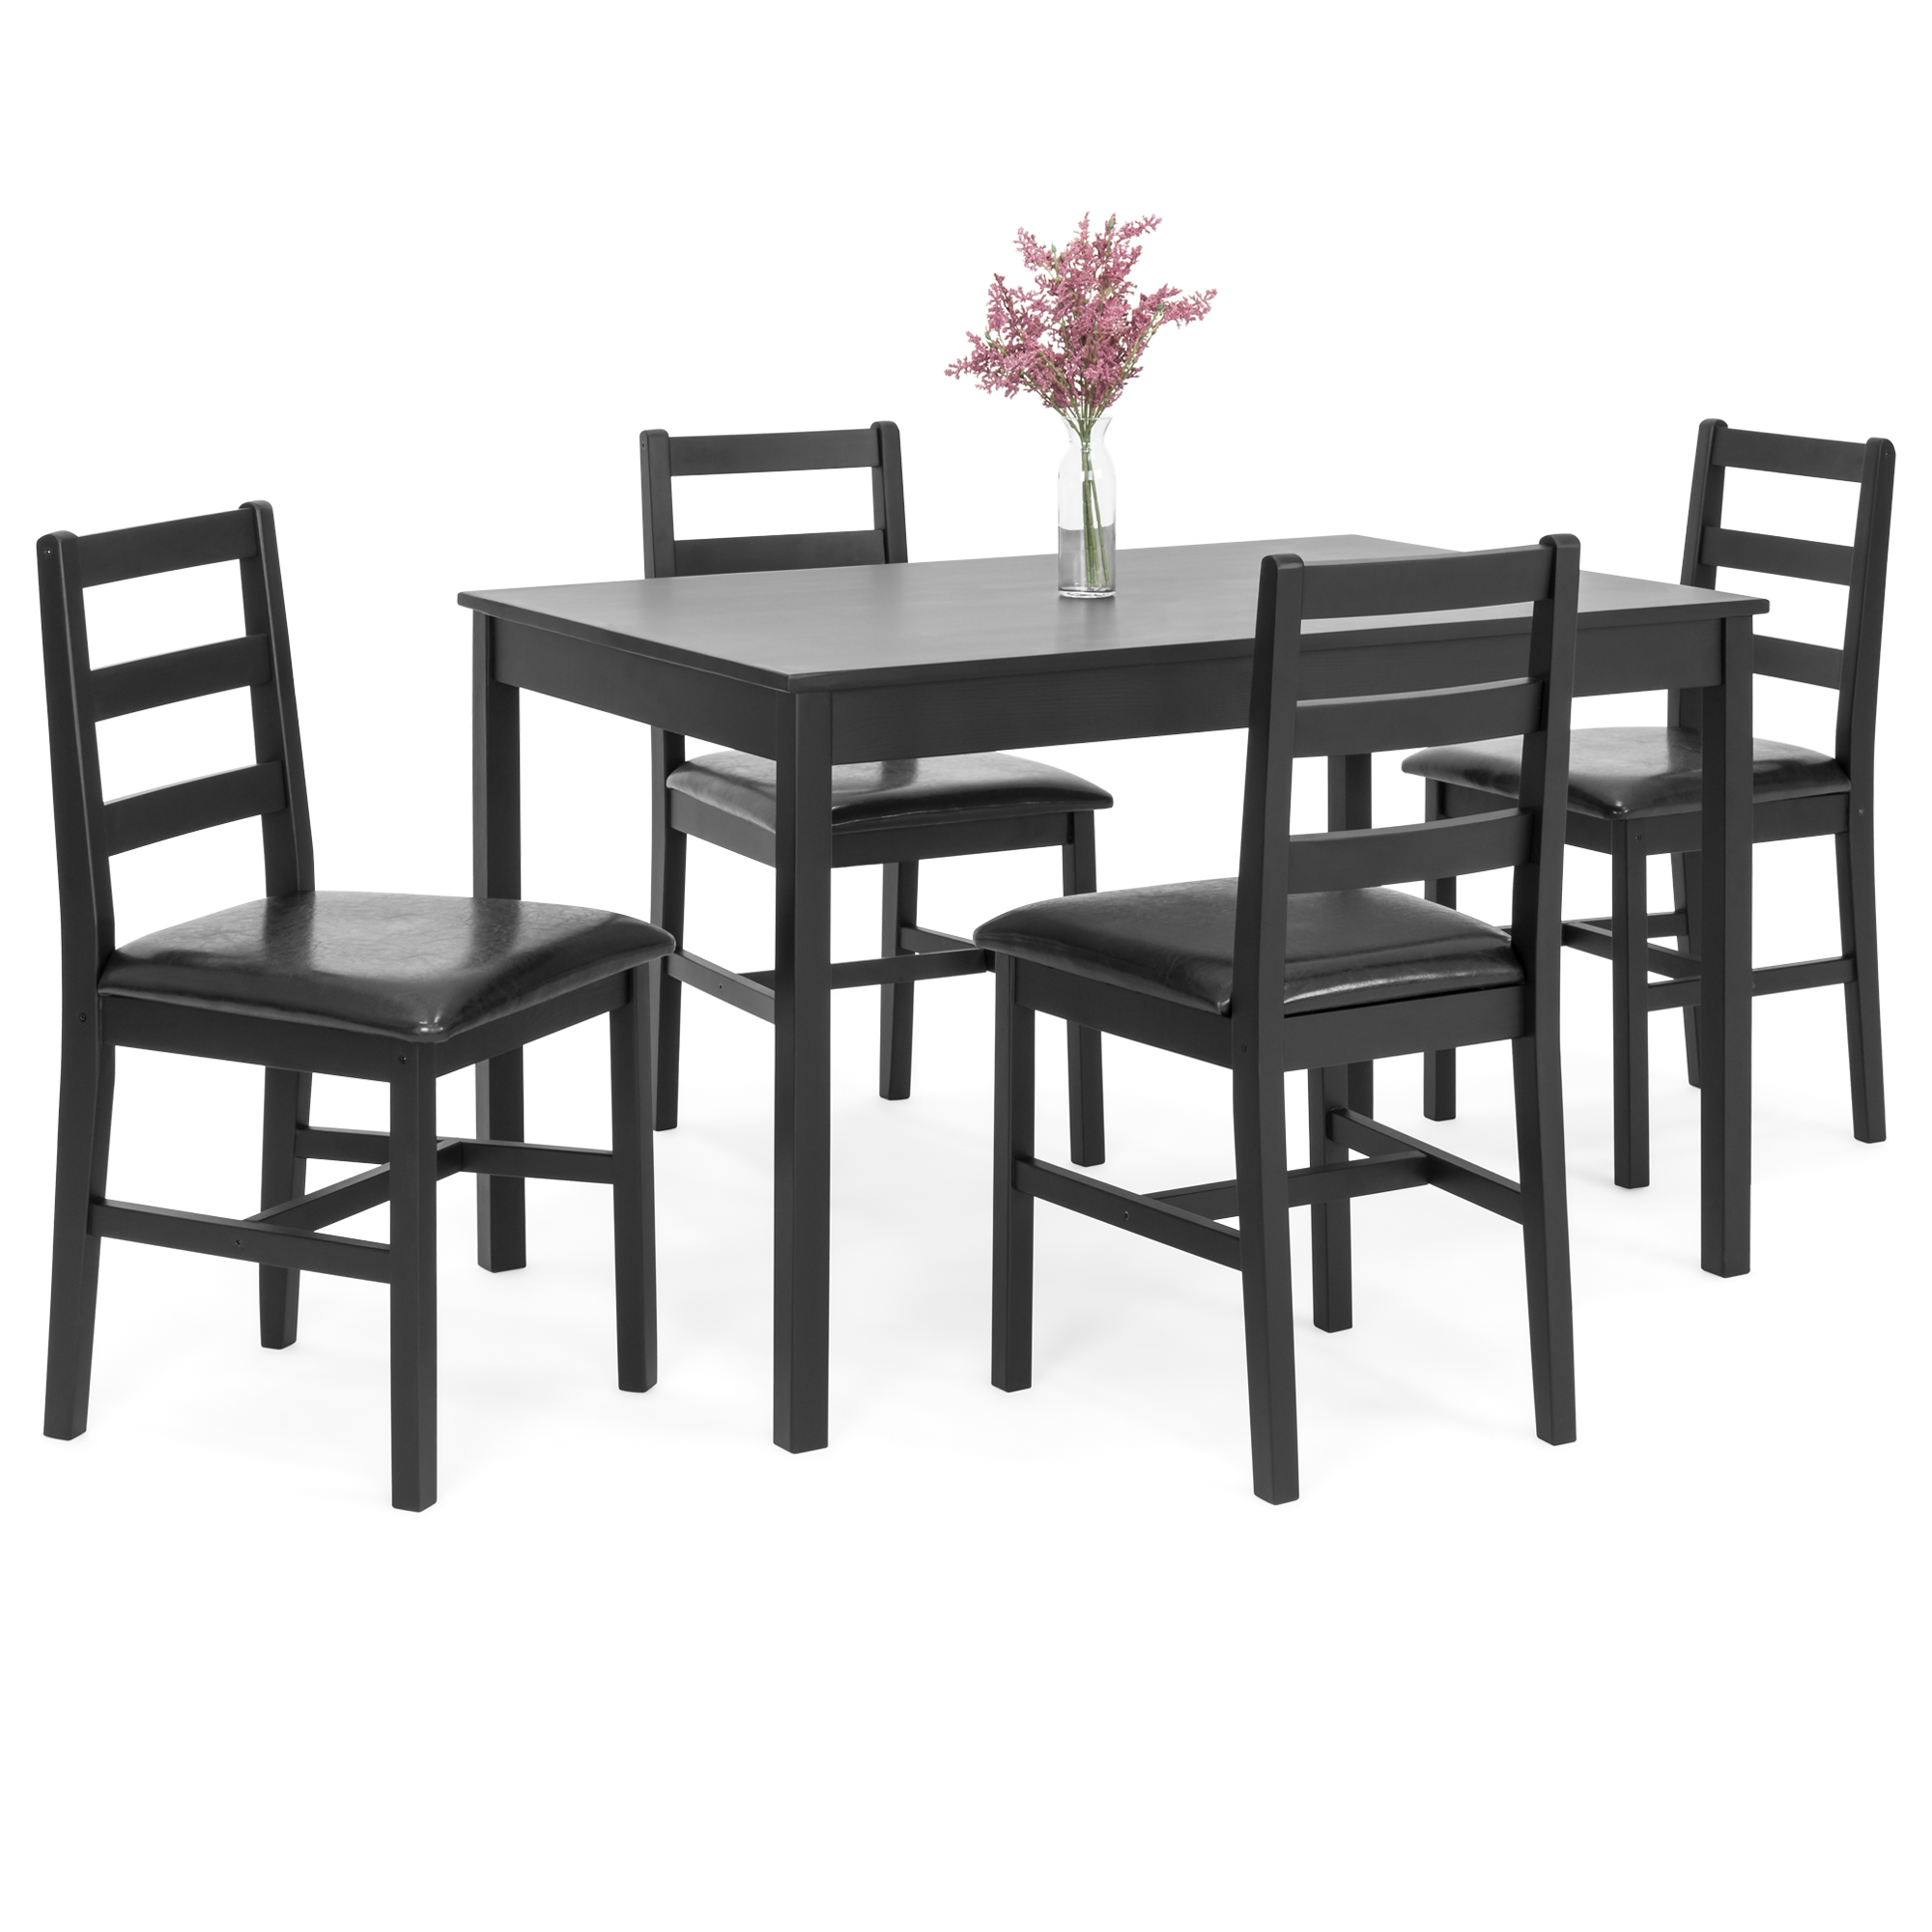 Best Choice Products 5-Piece Wooden Breakfast Table Furniture Set for Dining Room, Kitchen w  4 Cushioned Chairs Black by Best Choice Products